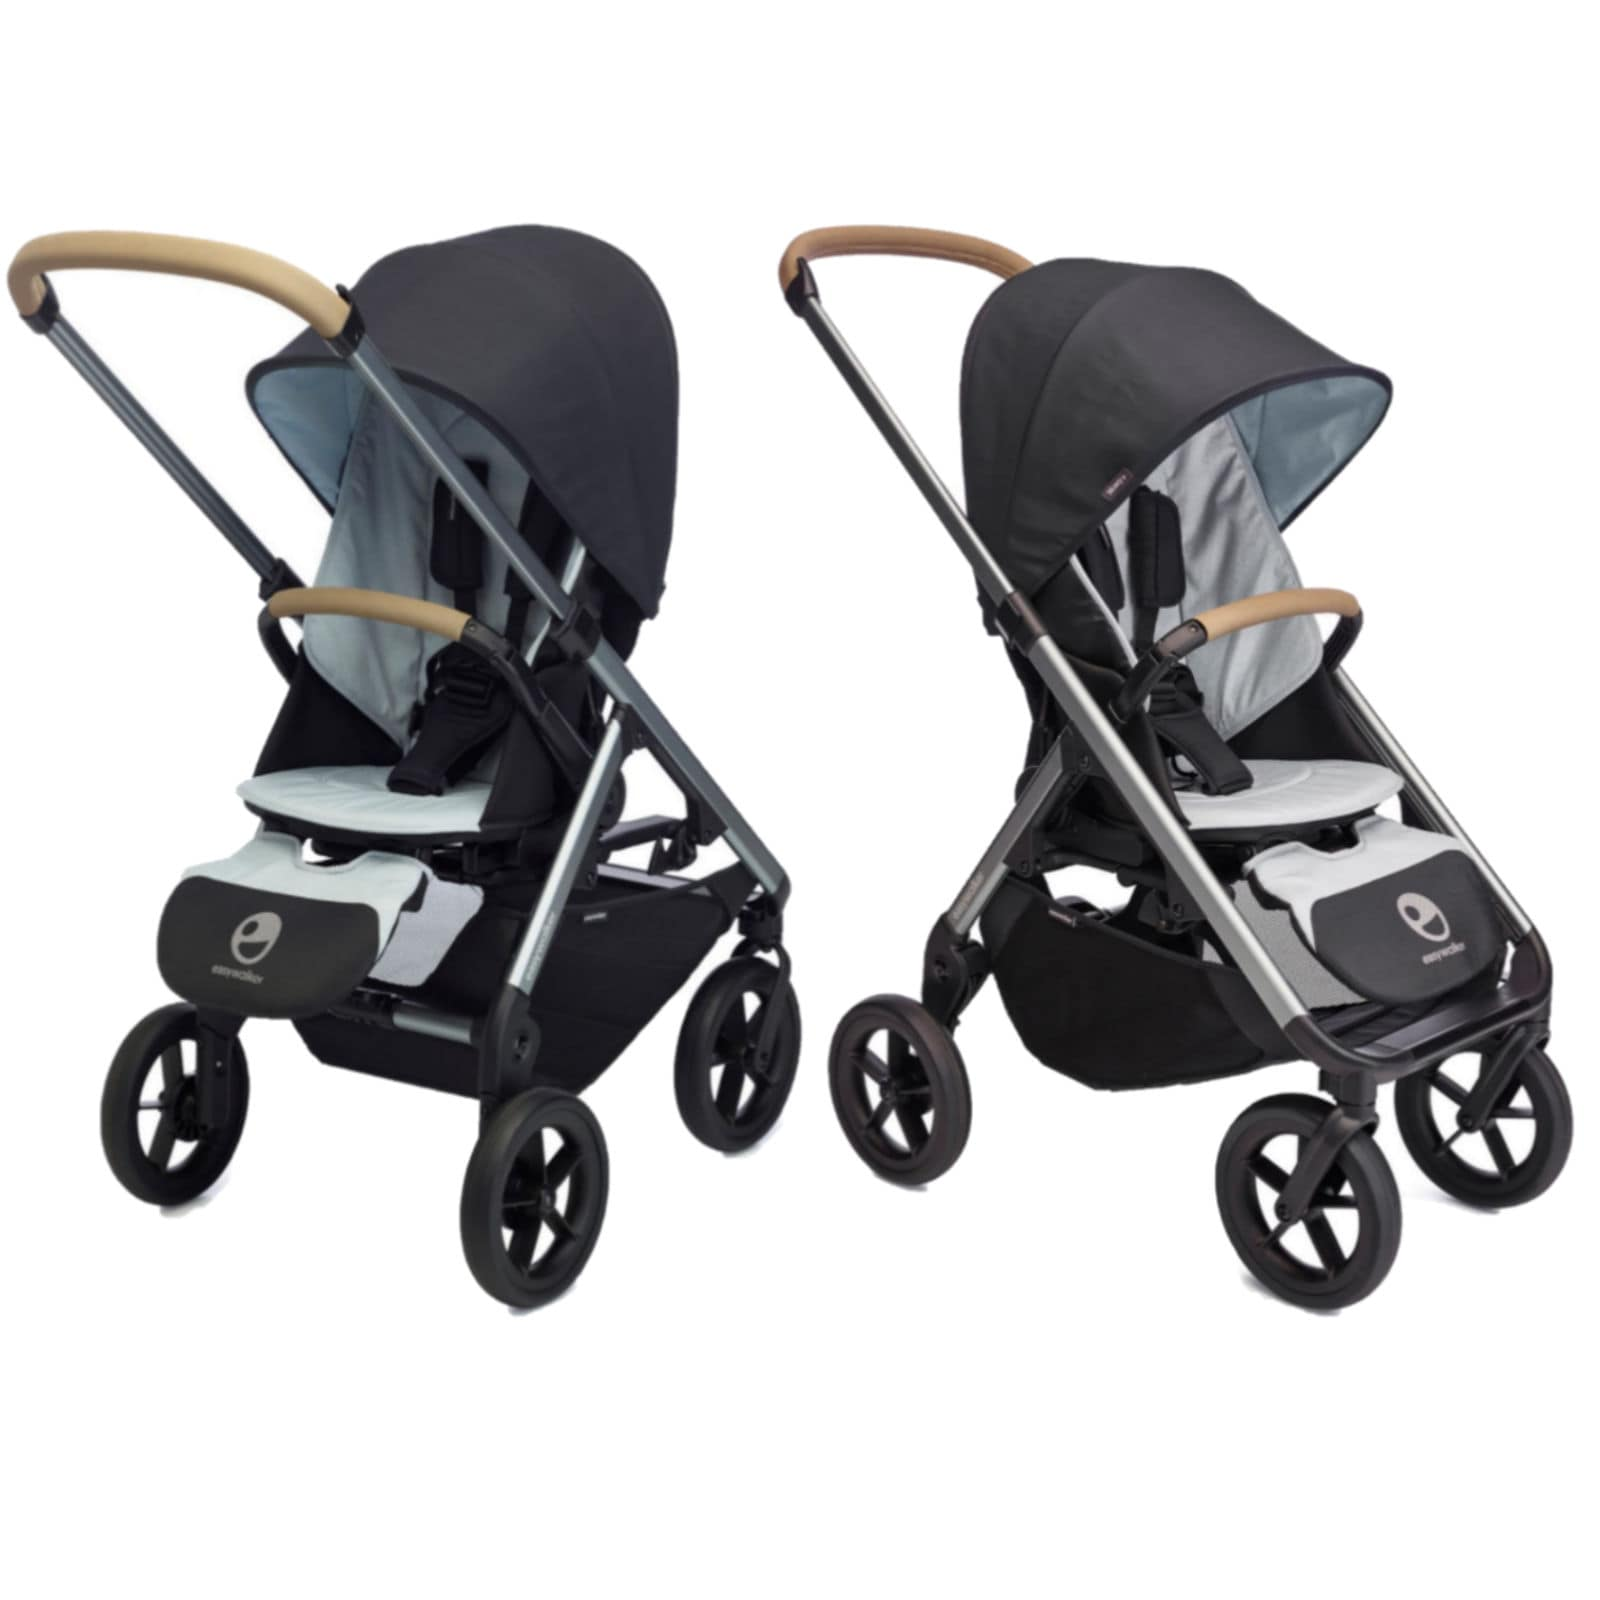 Easywalker Mosey+ Single Pushchair - Online4Baby.